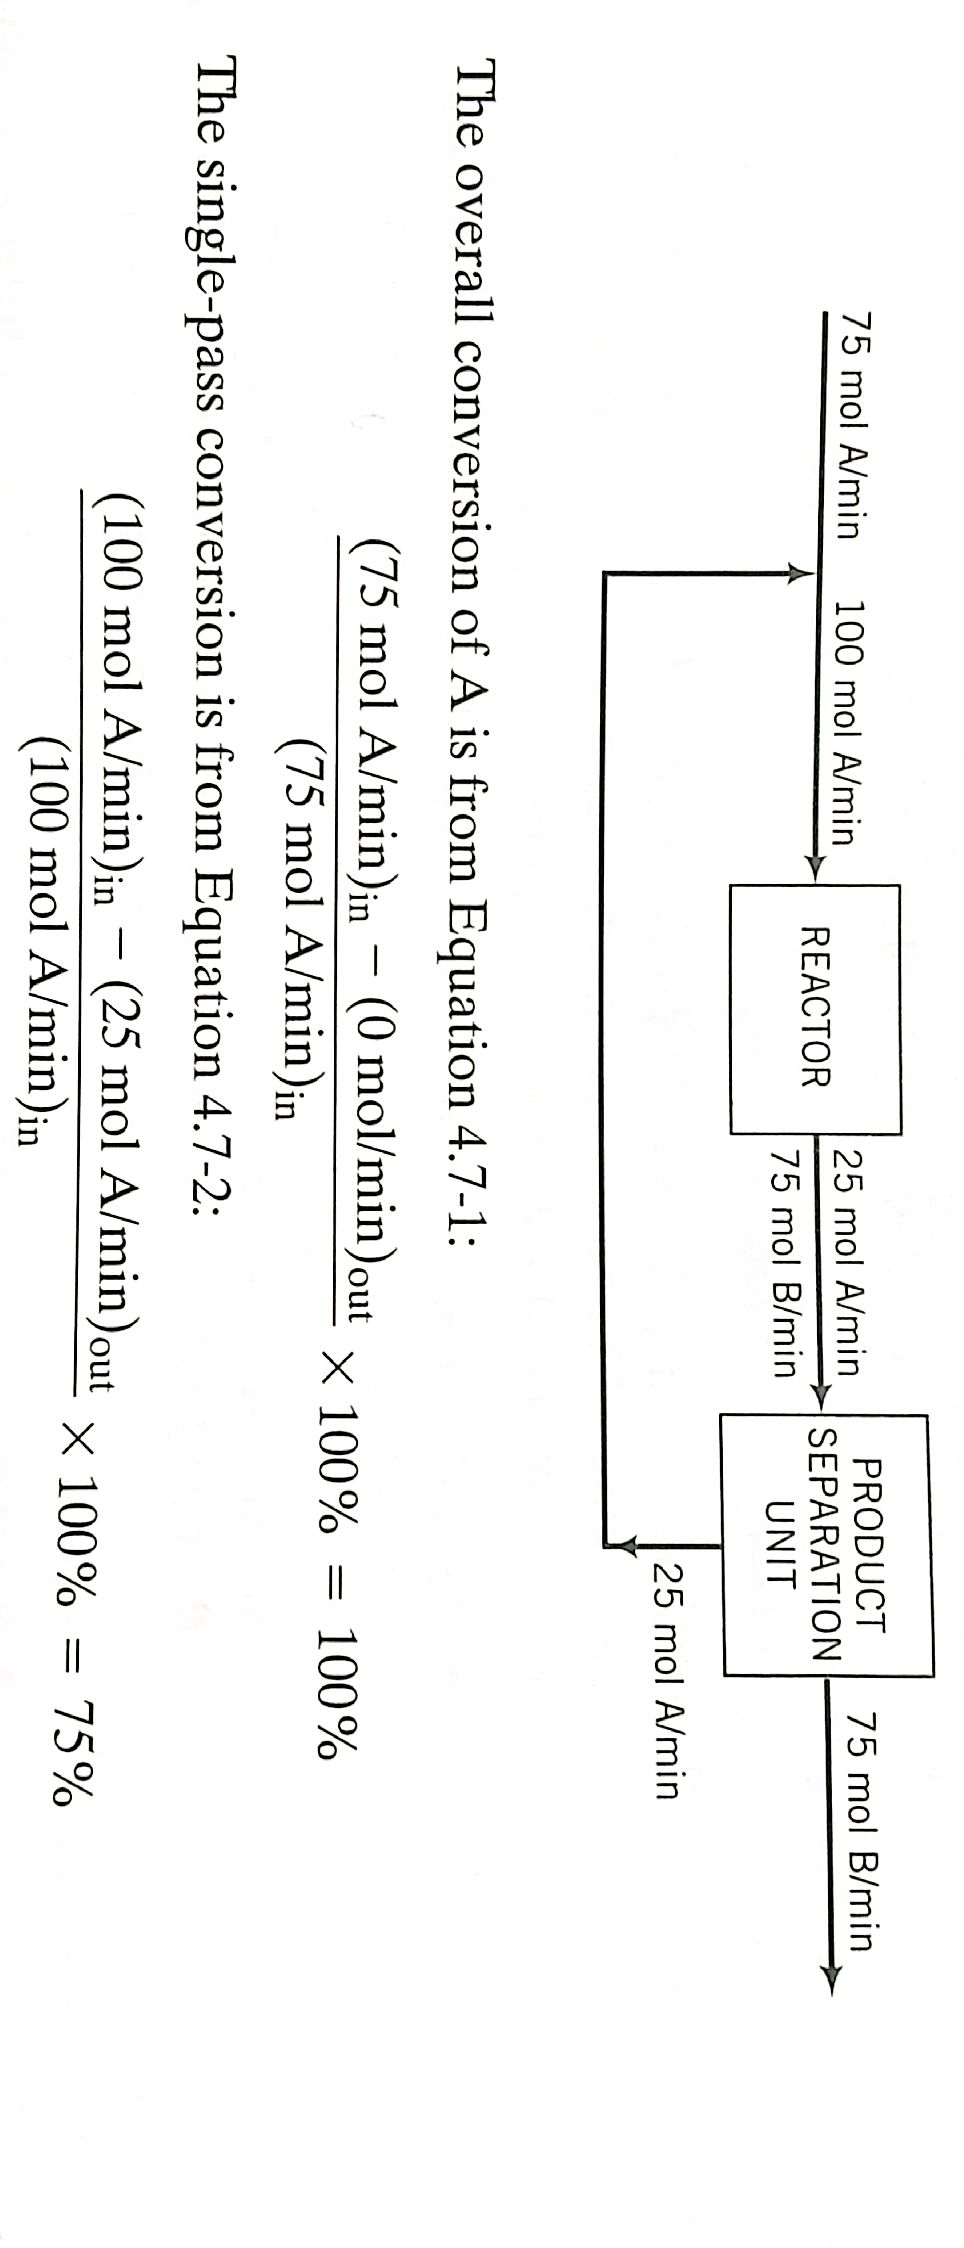 Chap_4_Material_Balance_on_Reactive_Process.pptx on emaze